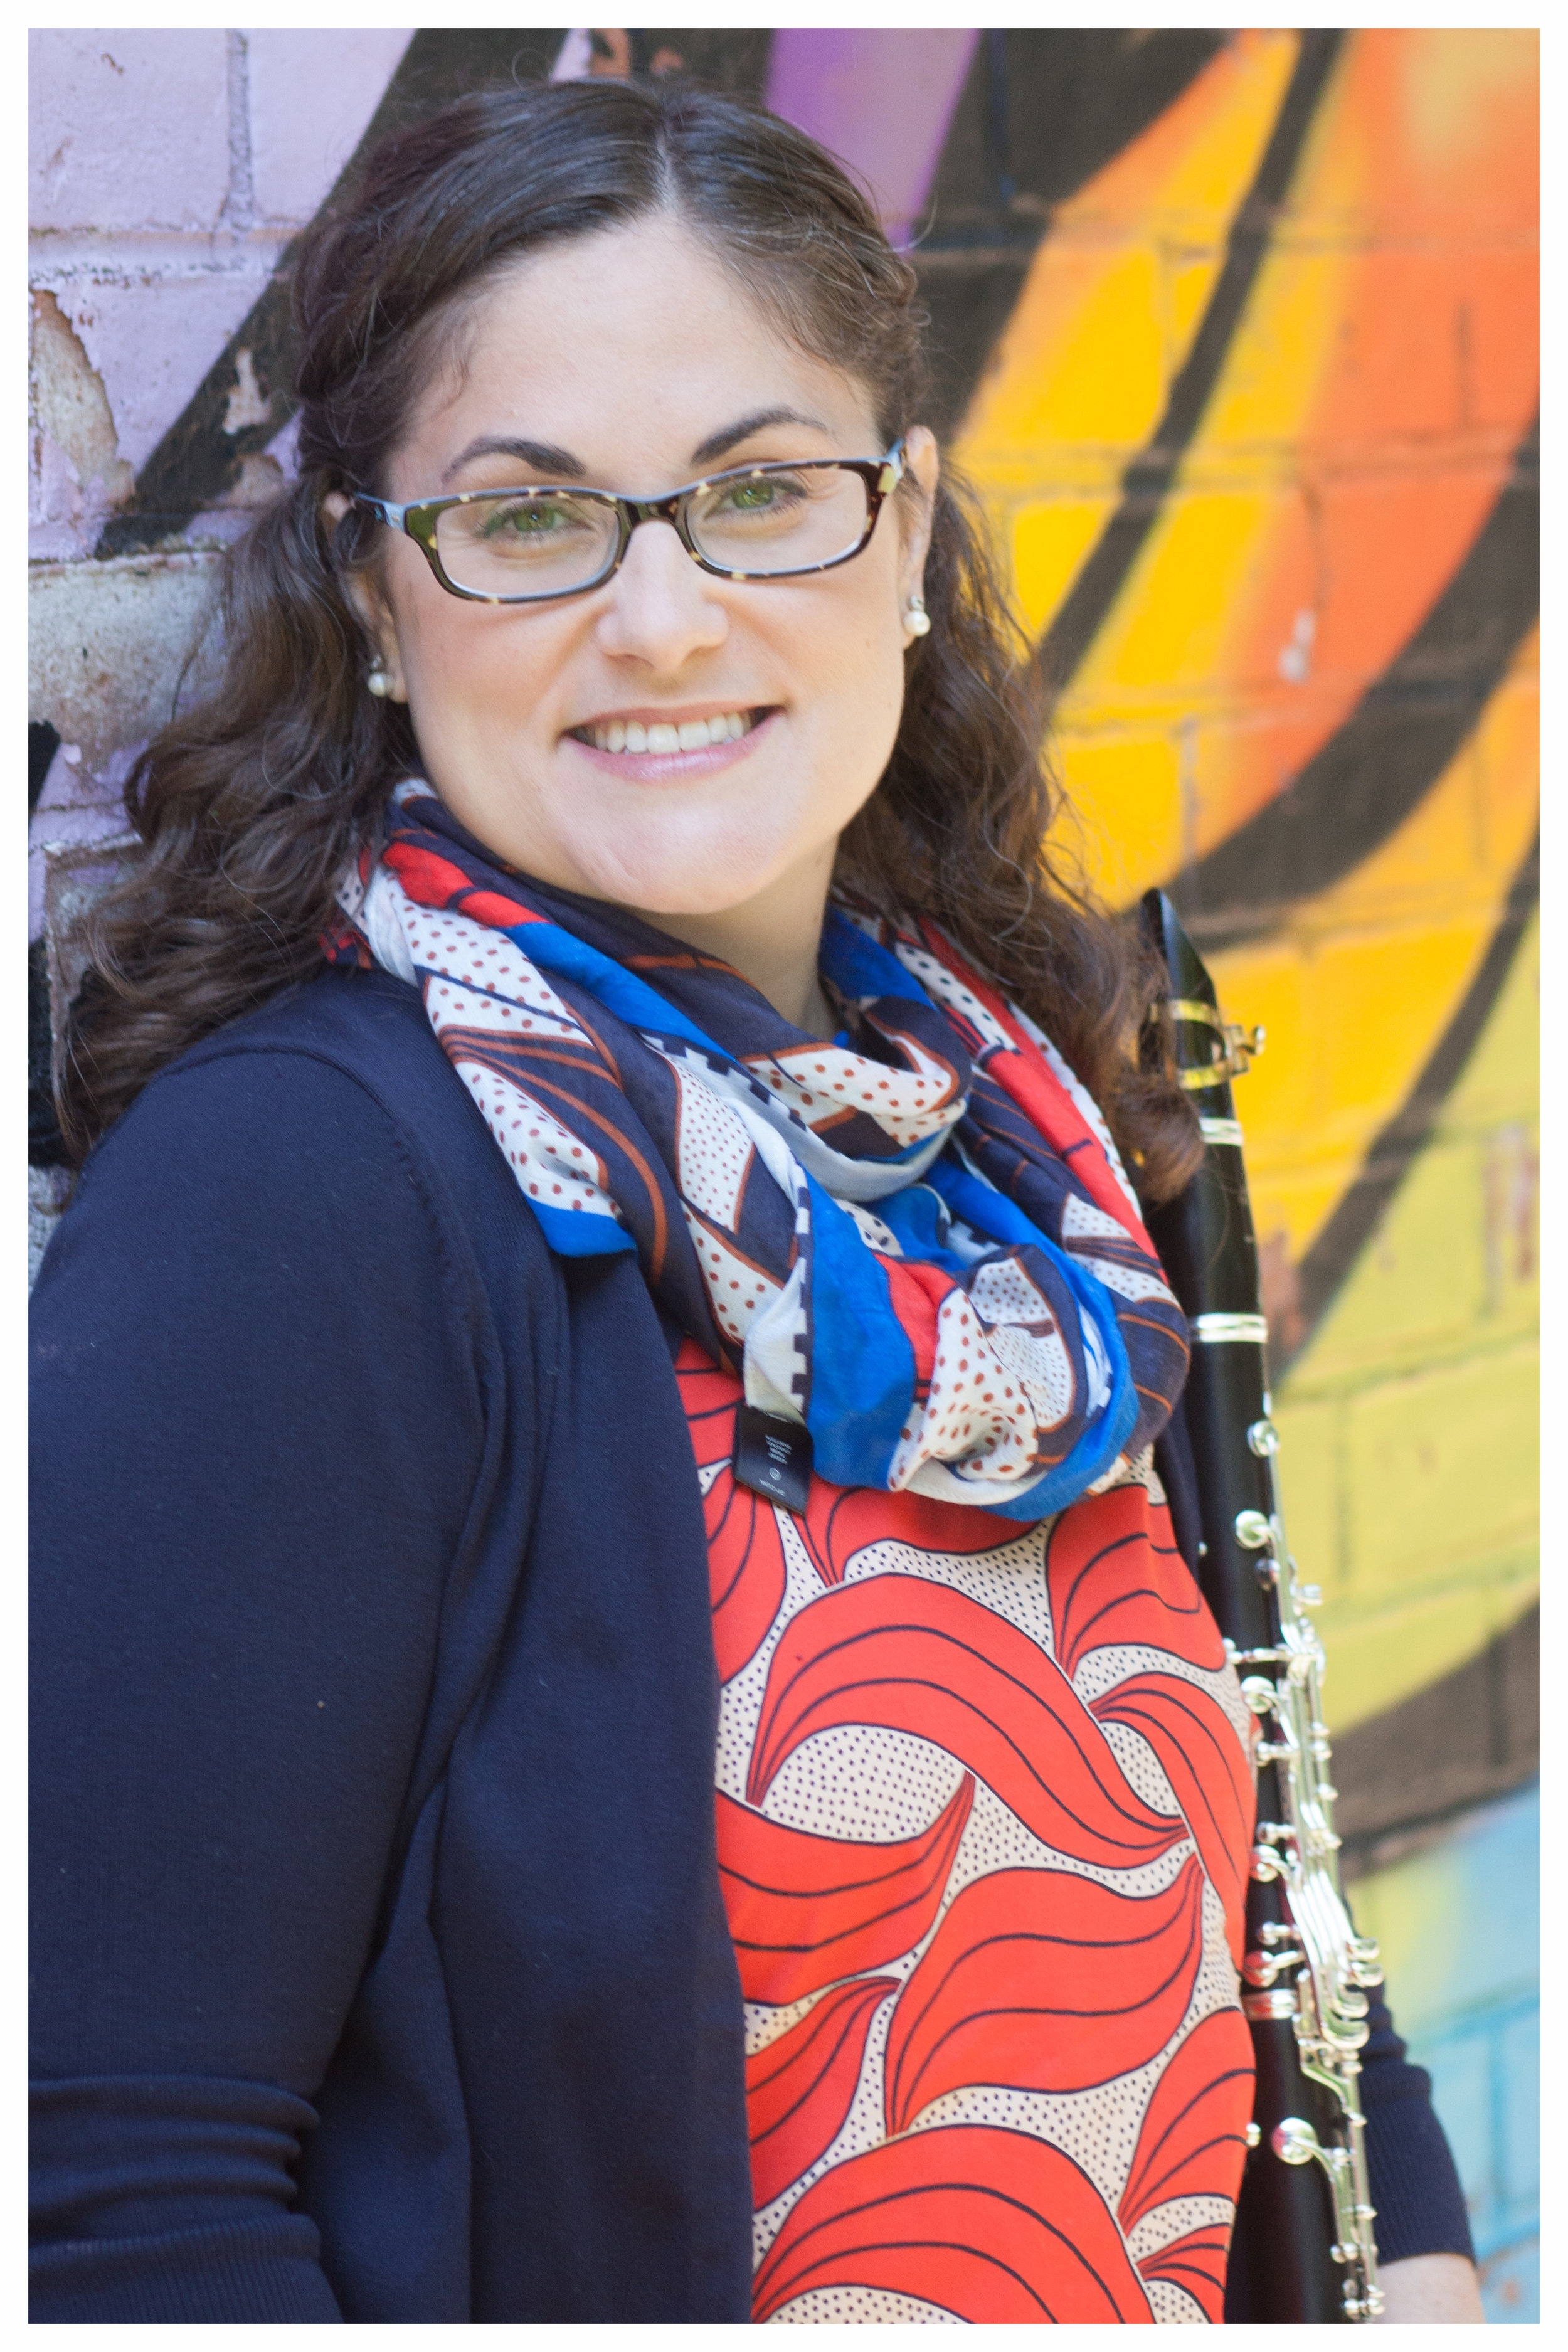 Biography - Seattle born clarinetist, Levana Cohen is an avid performer and music educator. Her performances have taken her to some of the most prestigious concert halls including, Carnegie Hall, Jazz at Lincoln Center's Rose hall, the Koussevitzky Music Shed and Ozawa hall of Tanglewood, Benaroya Hall, Symphony Space, The DiMenna Center, Flushing Town Hall and the 92ndY sharing the stage and performing with such artists as Frank Morelli, William Purvis, Steven Taylor, Shlomo Mintz and the Emerson String Quartet to name a few.  Levana's life as a NY based freelance musician has made her into an extremely versatile musician performing and teaching in a multitude of different genres.In performance, these genres include the ballet, pit orchestra, opera, chamber music (both in the concert hall and for house parties), studio musician (recording for TV and radio), and the occasional concerto. Currently, Levana perform as the Principal Clarinetist for the Astoria Symphony Orchestra and appears at universities nation-wide leading masterclasses, clinics and performing recitals and concertos.As a committed and devoted music educator, Dr. Cohen enjoys teaching students of all ages.  She is the clarinet professor and teaches the Woodwind Method class at Long Island University, C.W. Post campus.  She also serves as the Clarinet Instructor at Suffolk County Community College, and operates her own private teaching studio in Port Washington NY.  Apart from helping her students find their true, unique voice on their instrument, one of her highest priorities at the college level is to prepare her students for successful careers in music.  Dr. Cohen is a Vandoren Regional Artist and through this program gives free clinics to music programs across Long Island.  Additionally, Levana is a Woodwind Specialist and coach with the Metropolitan Youth Orchestras of New York, a chamber music coach for Stony Brook University, and is the director of the Port Washington Clarinet Choir. Levana holds both a Master of Music degree and a Doctorate of Musical Arts degree from Stony Brook University under the tutelage of Daniel Gilbert.  She performs on Buffet Tosca clarinets and uses Vandoren mouthpiece, ligature and reed products.